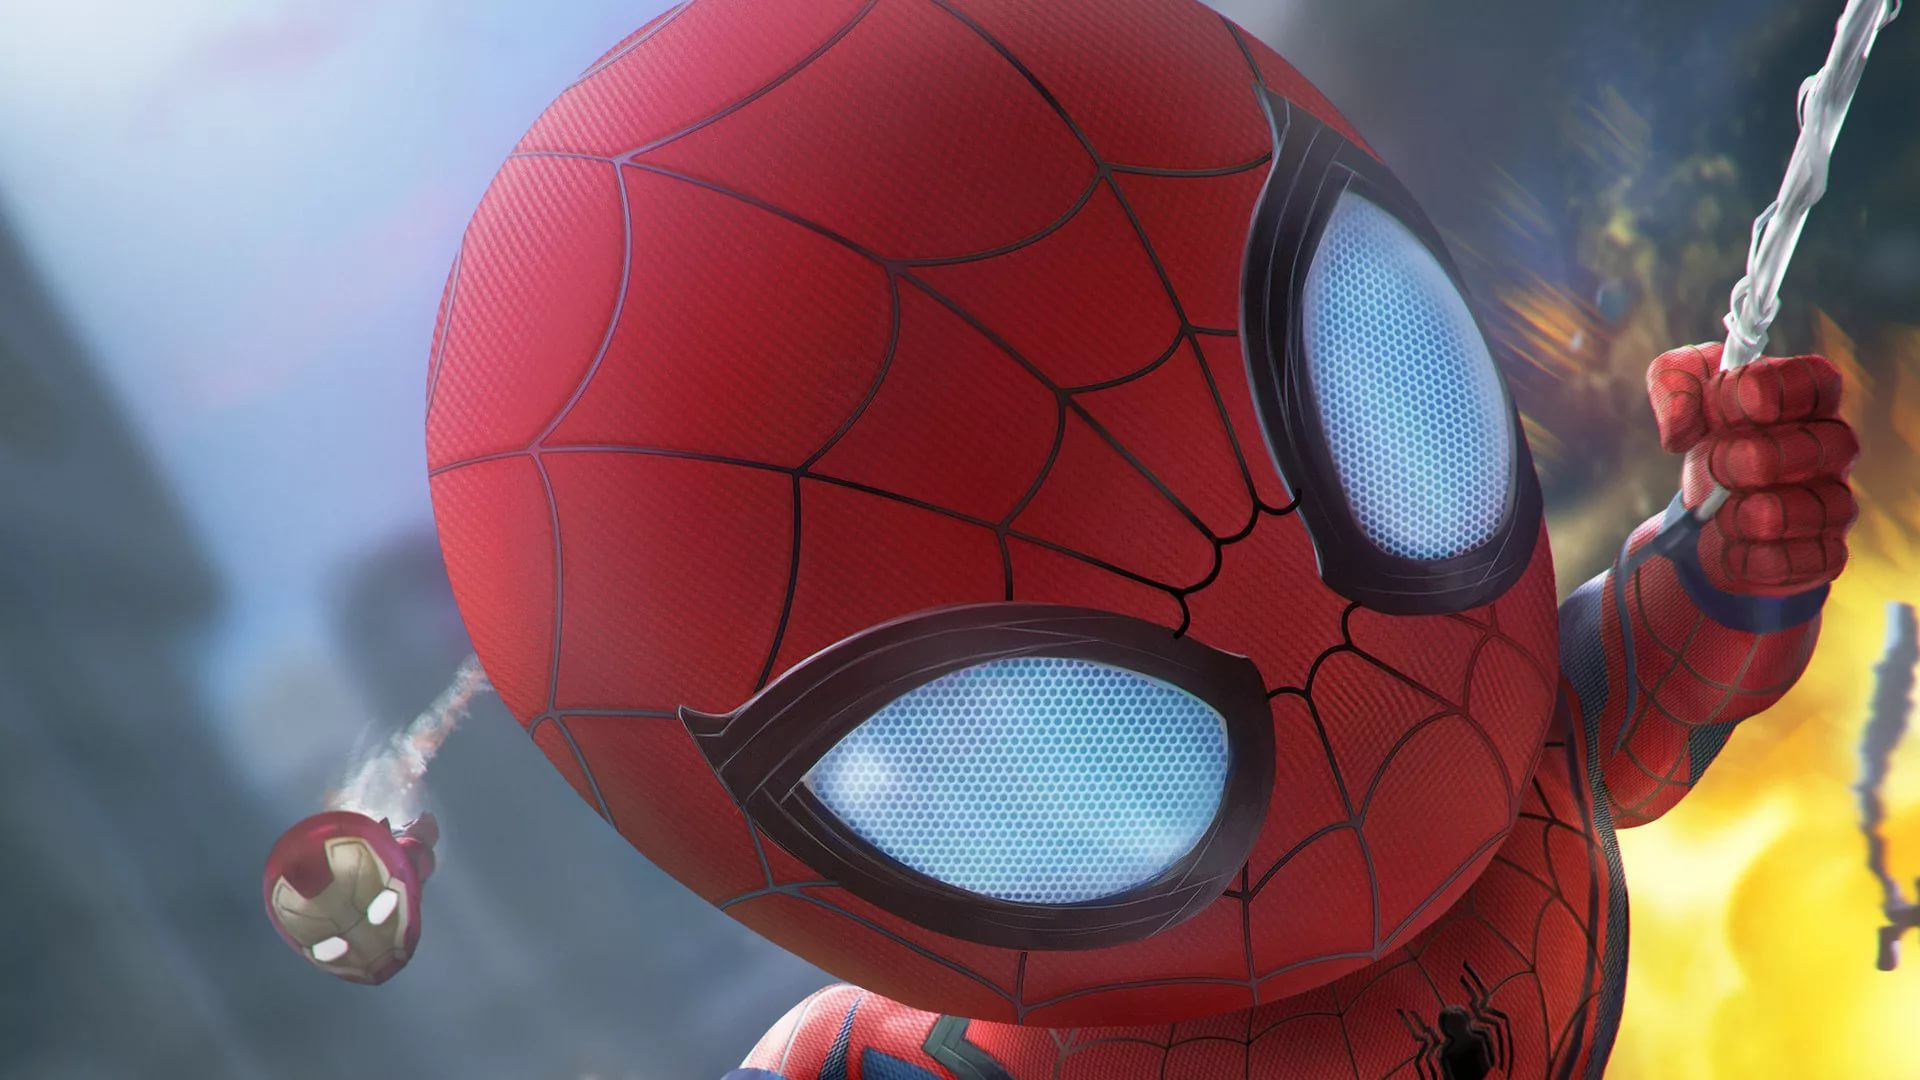 Spiderman download free wallpapers for pc in hd